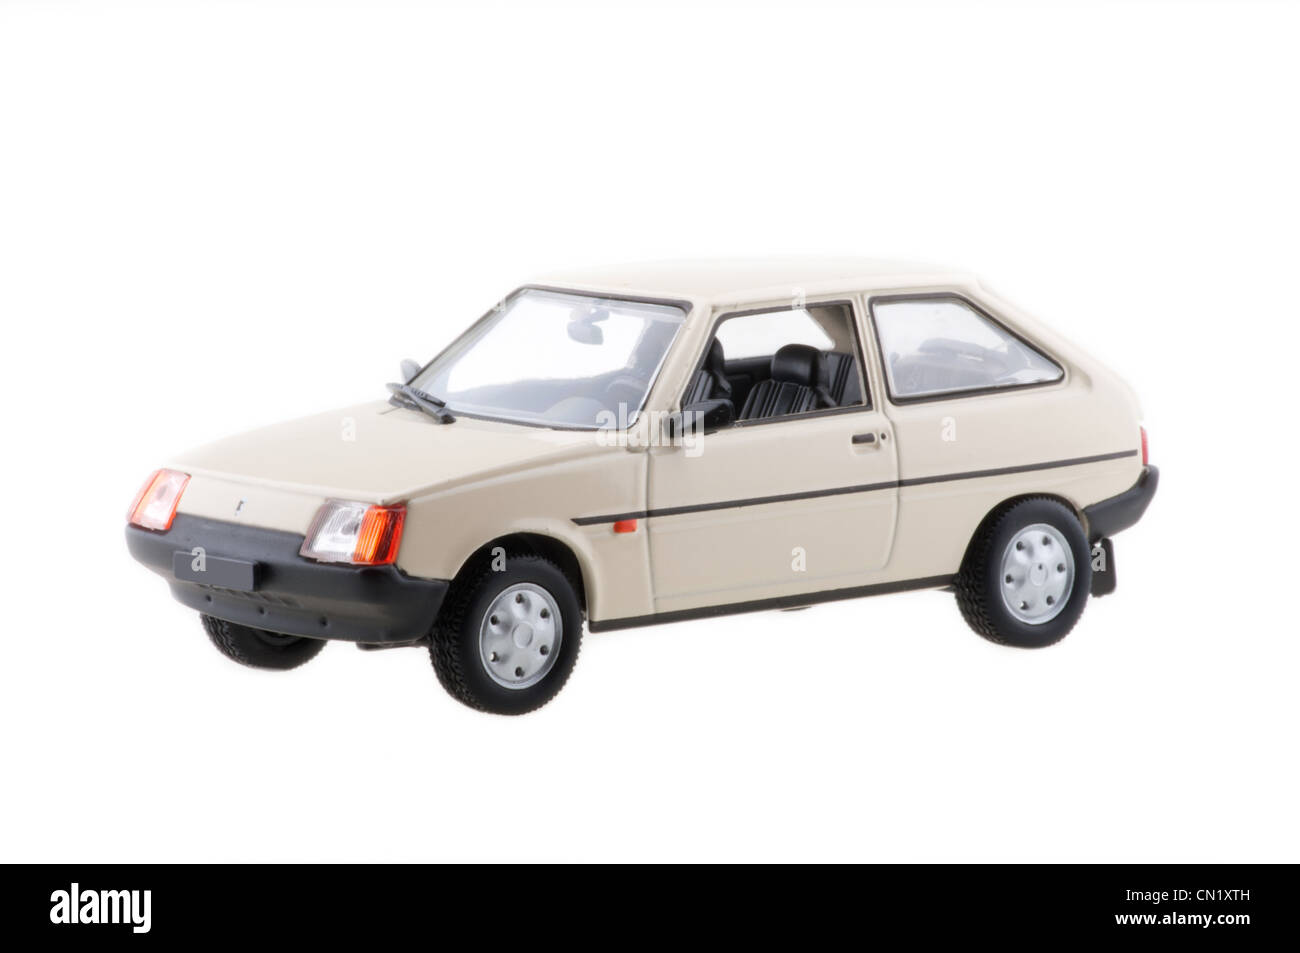 Tavria model car on white background. - Stock Image